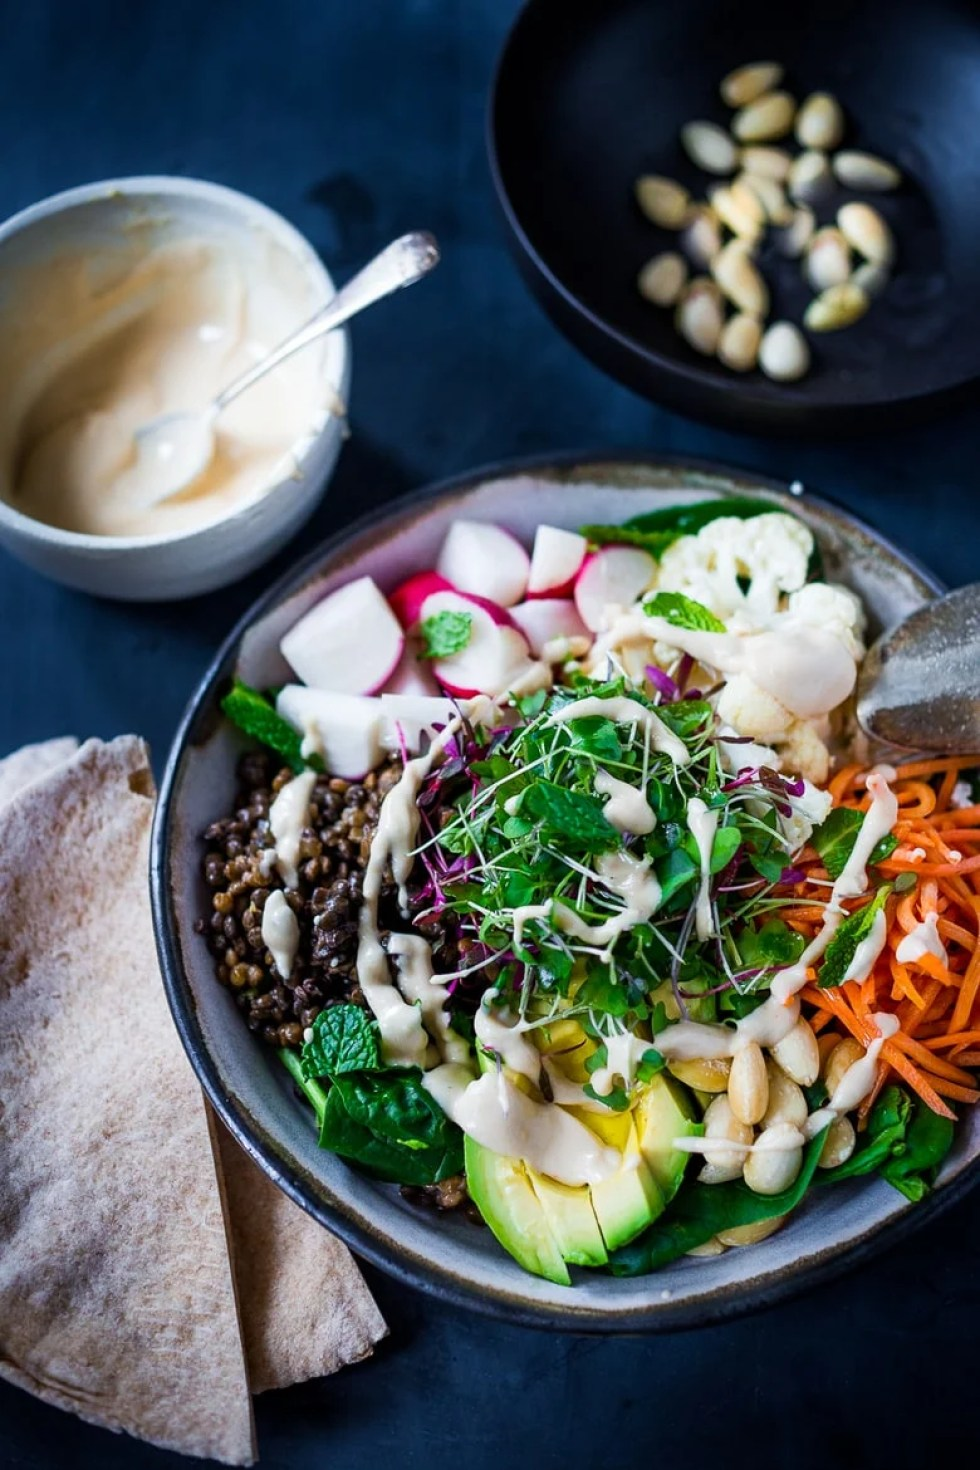 EAT CLEAN with these 20 simple Plant-Based Meals!!!  Middle Eastern Lentil Veggie Bowl with Quick Hummus Dressing   Vegan & GF   www.feastingathome.com